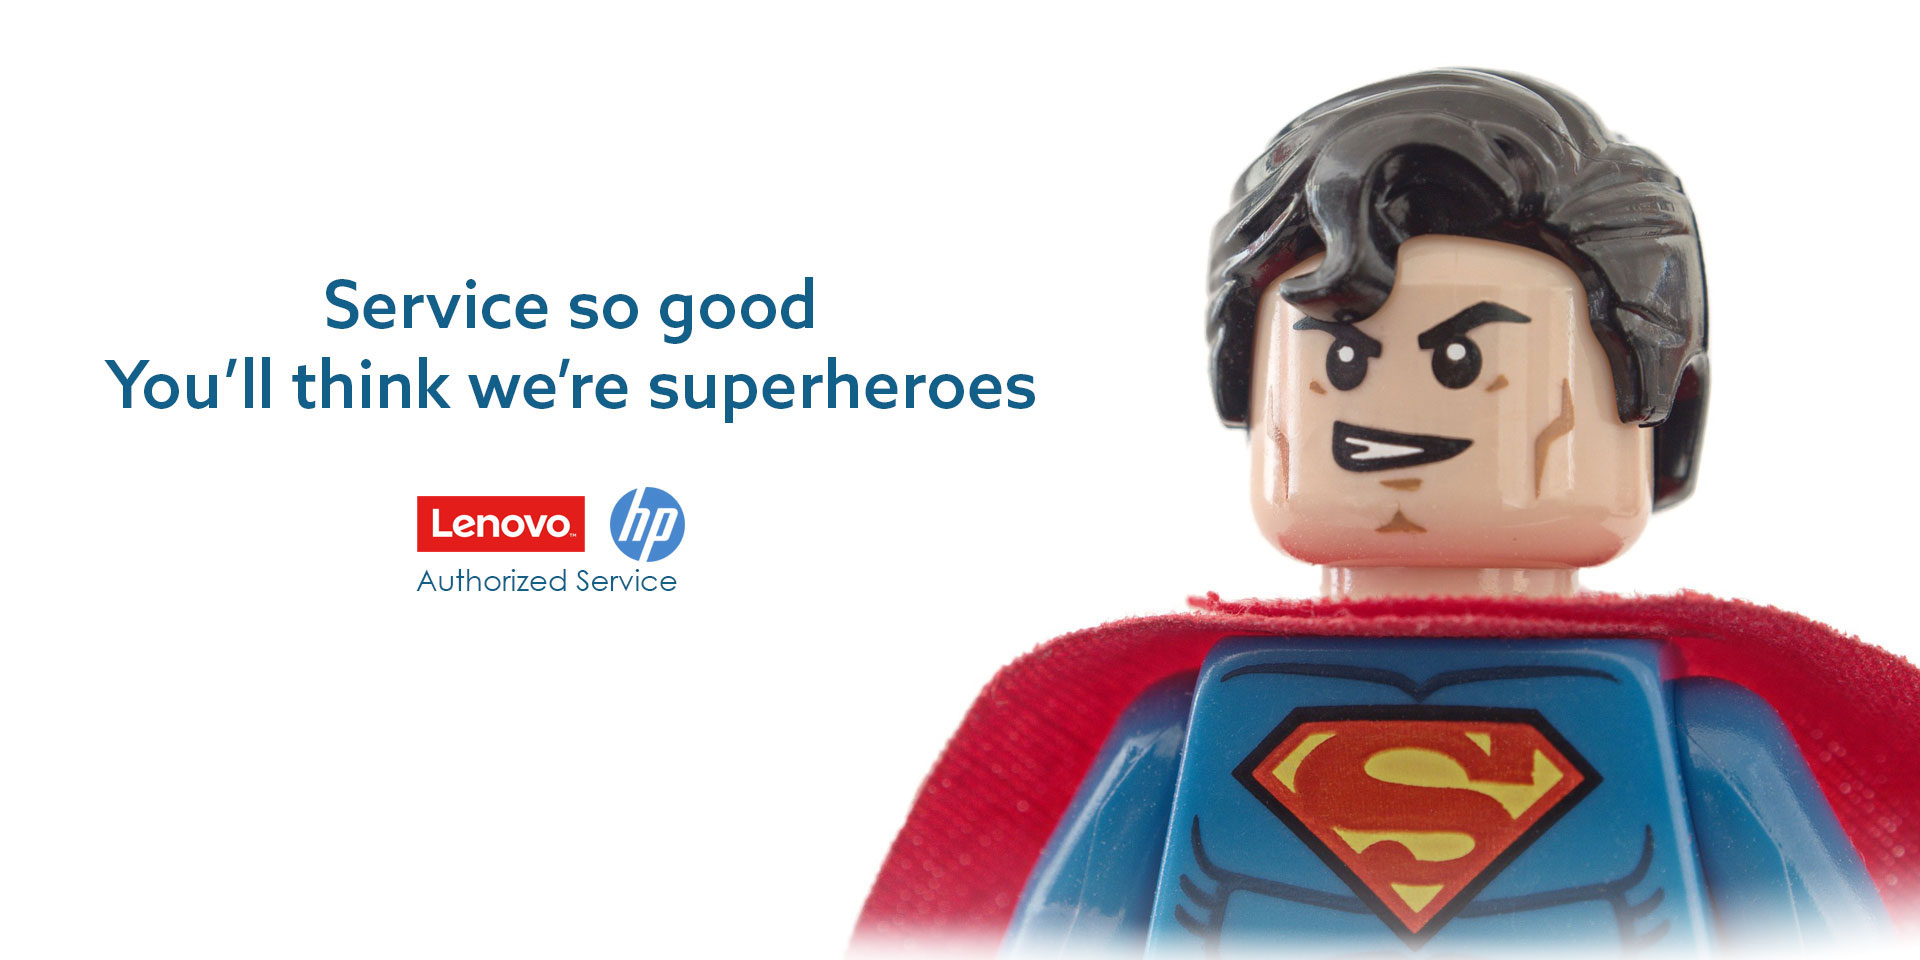 service so good you'll think we're superheroes